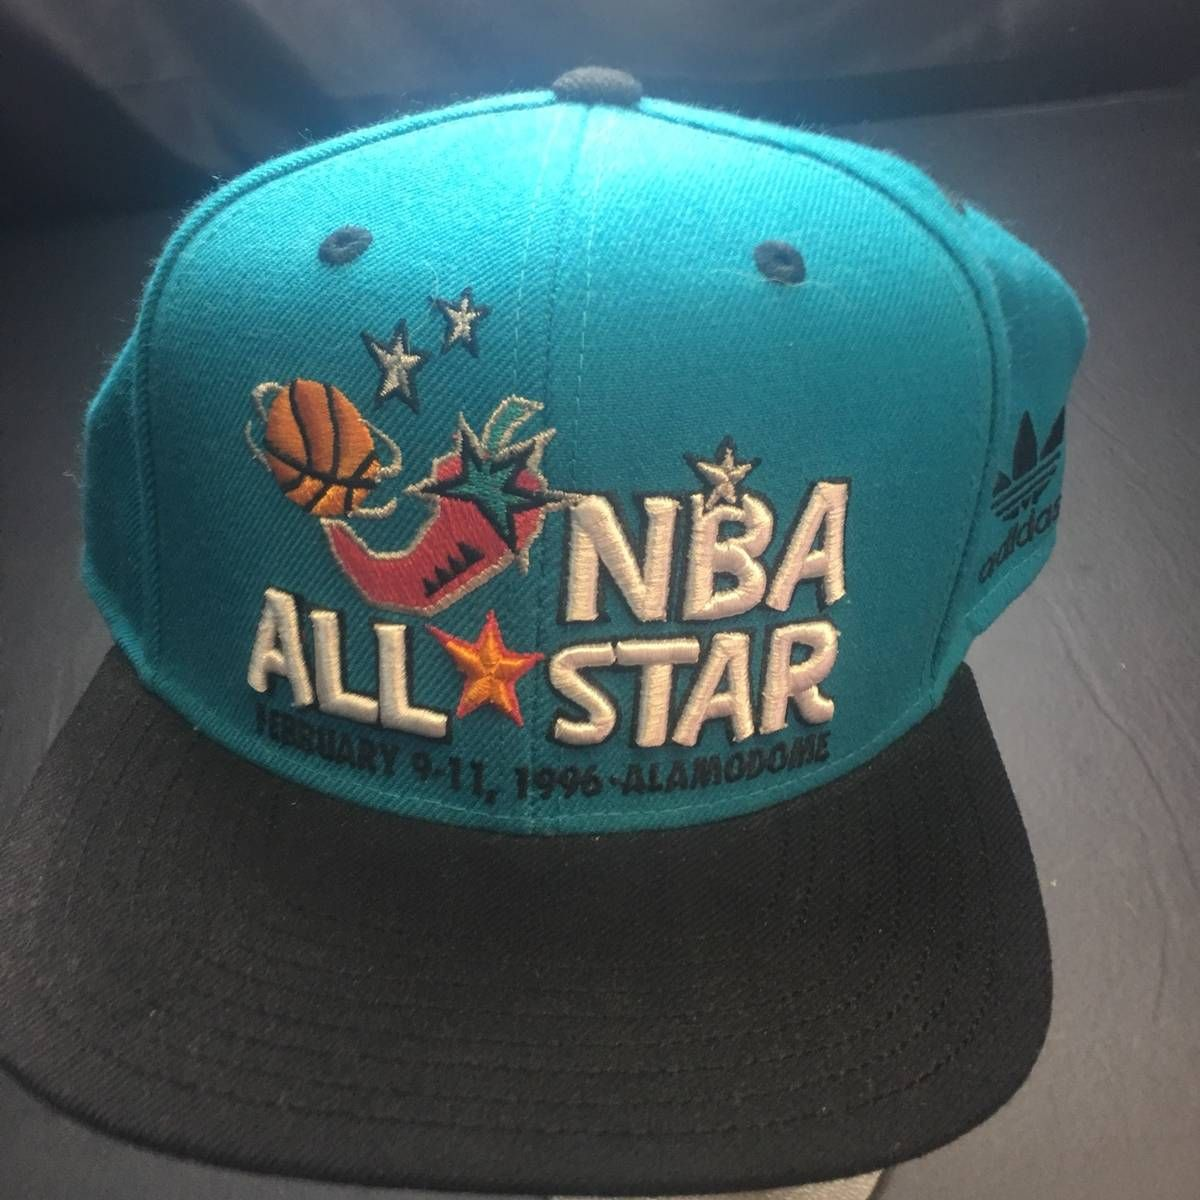 54f36d660c2 Adidas Vintage Adidas 1996 NBA All Star Game Snapback Hat Size one size -  Hats for Sale - Grailed